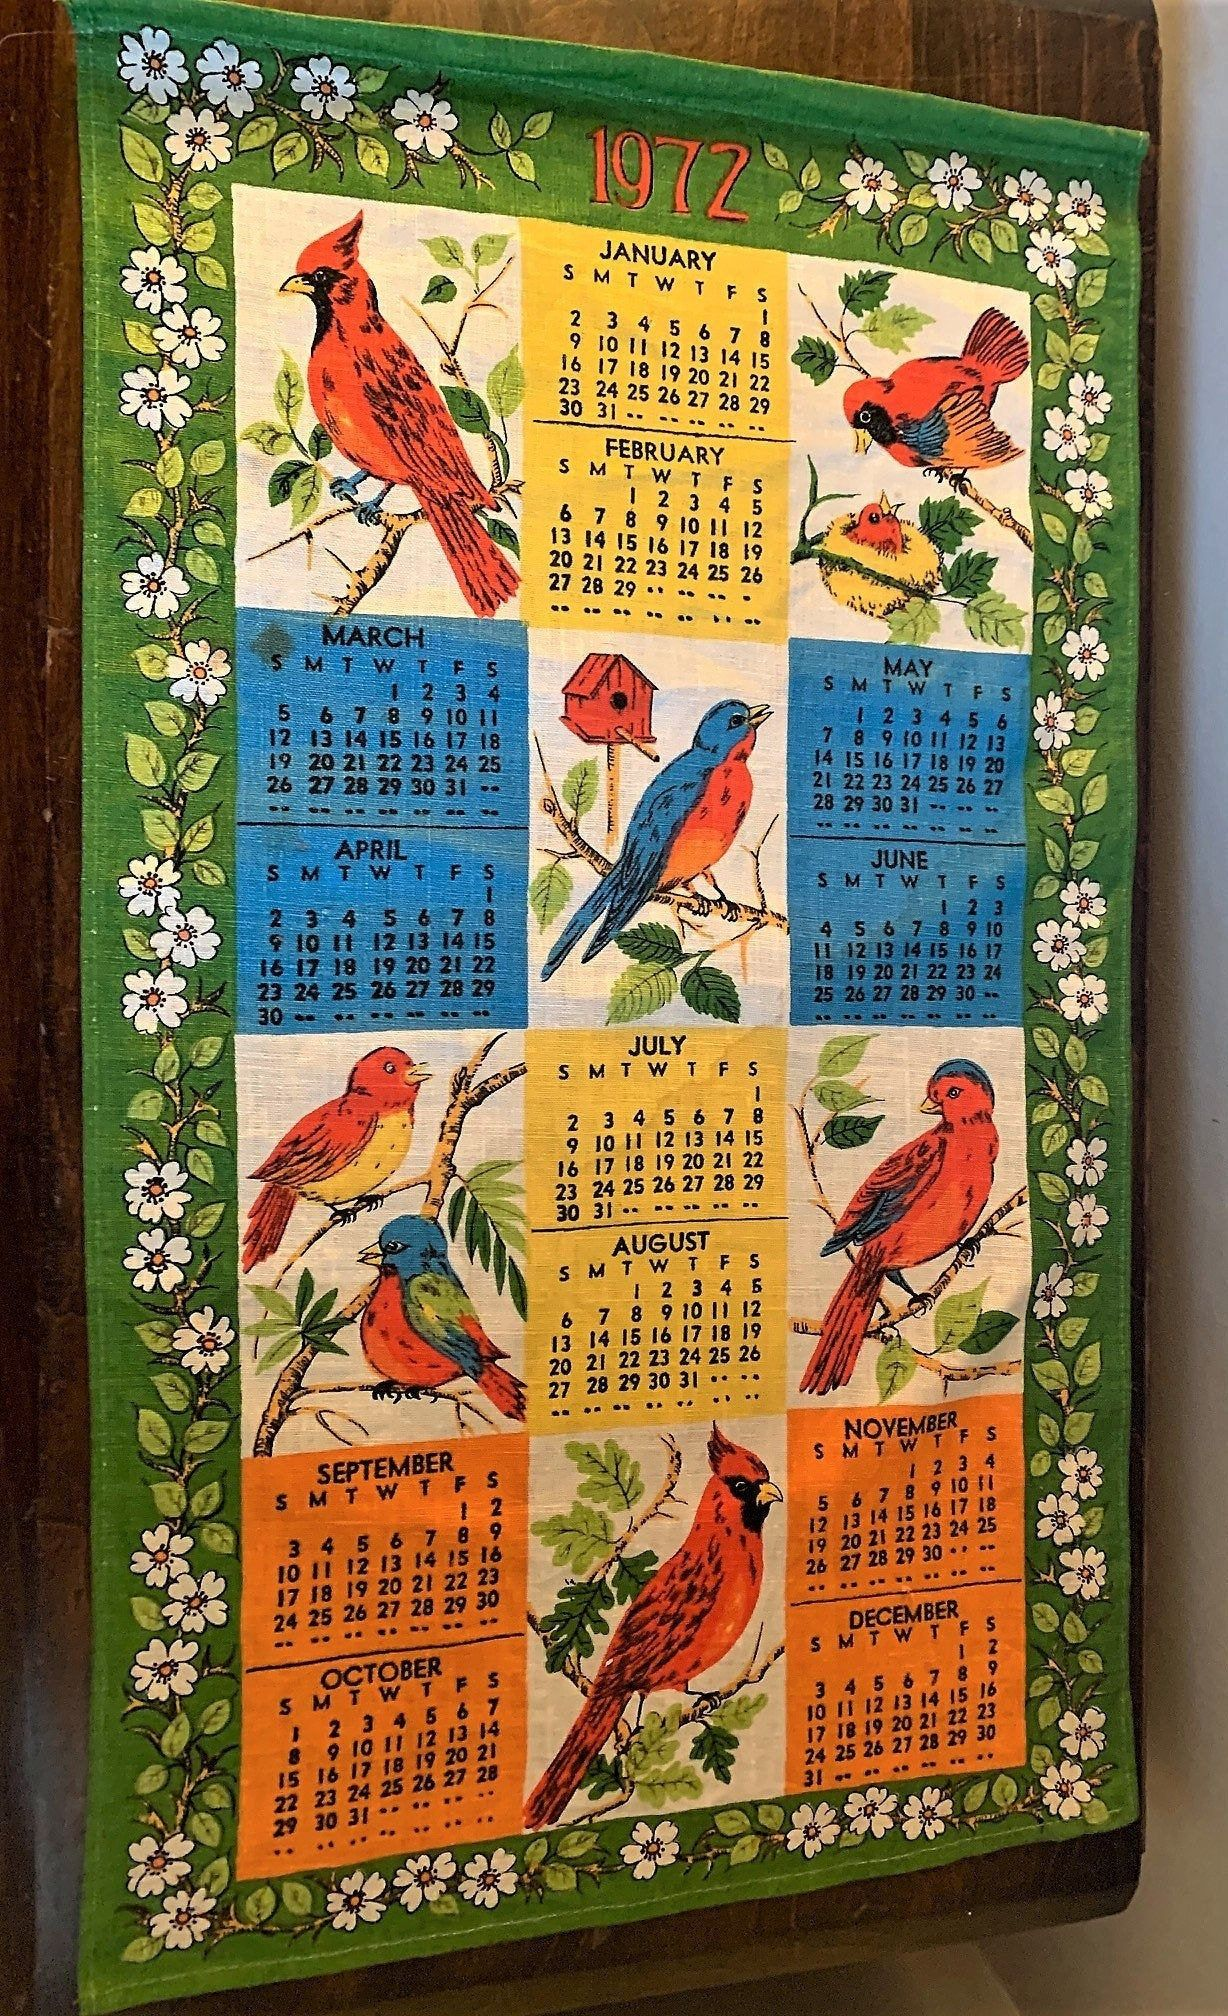 1972 Calendar Linen Wall Hanging Tea Towel With Colorful Birds In 2020 Tea Towel Display Retro Kitchen Decor Retro Kitchen